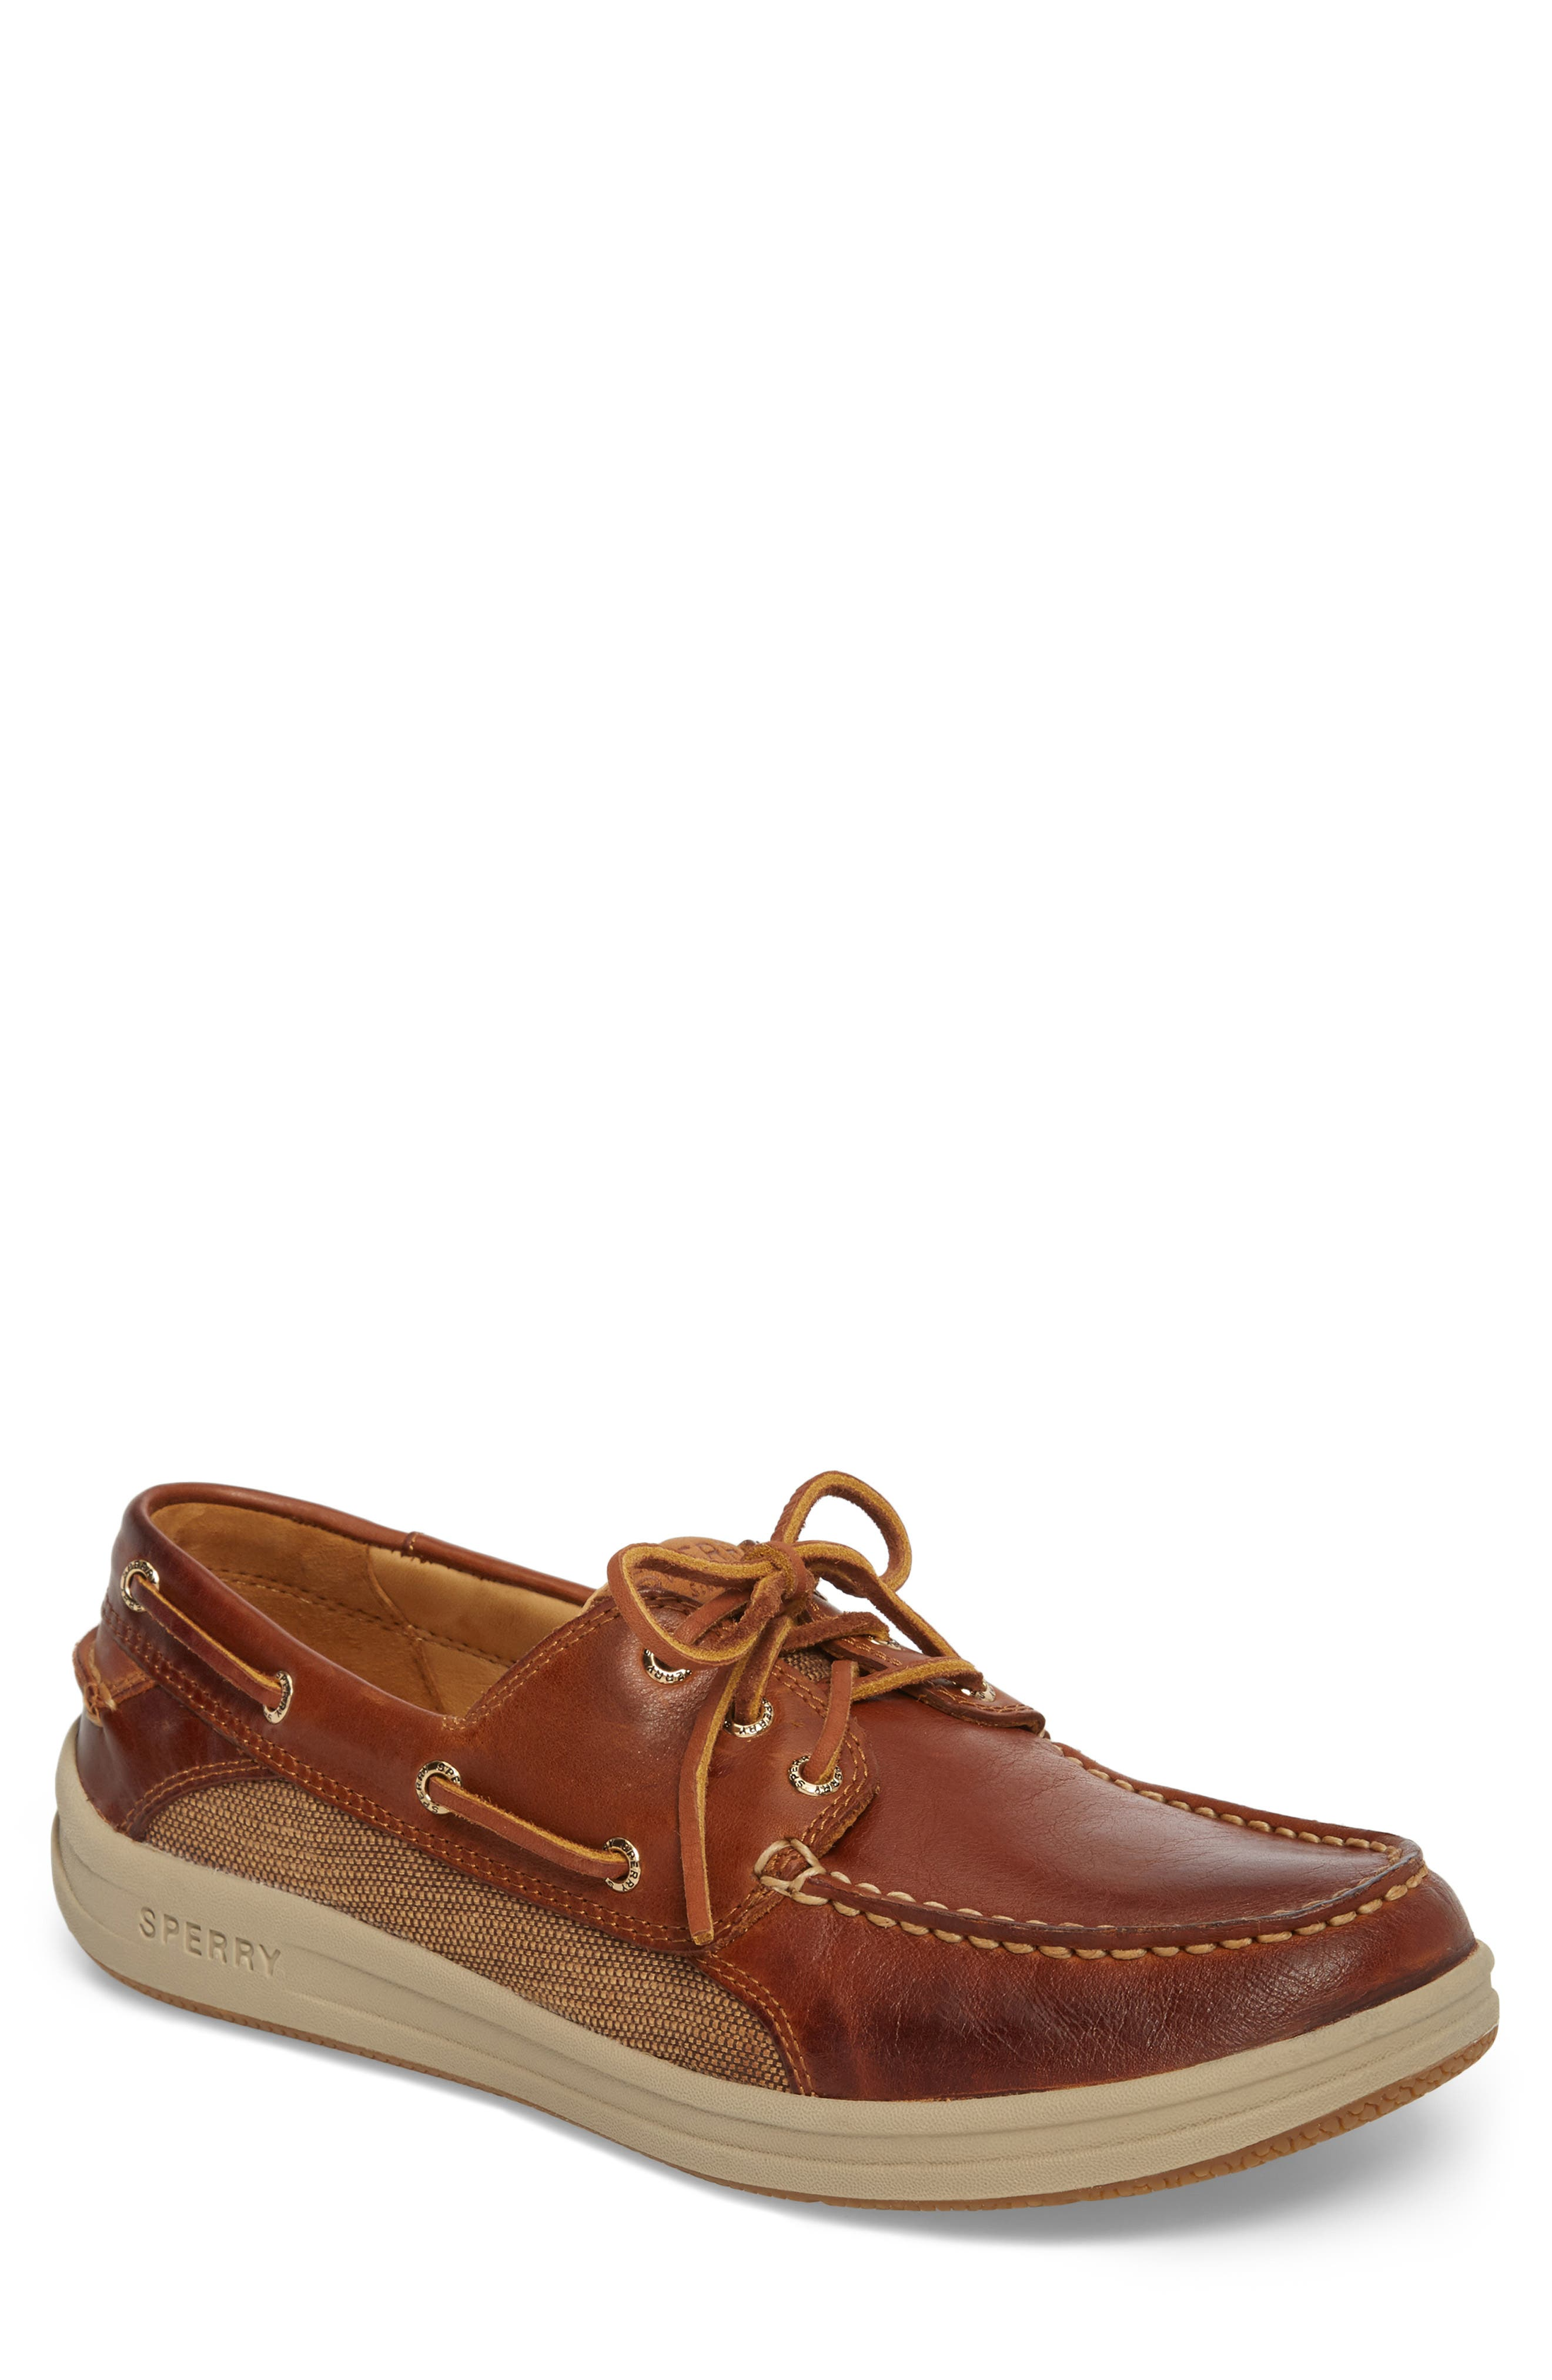 Gold Cup Gamefish Boat Shoe,                         Main,                         color, BROWN LEATHER